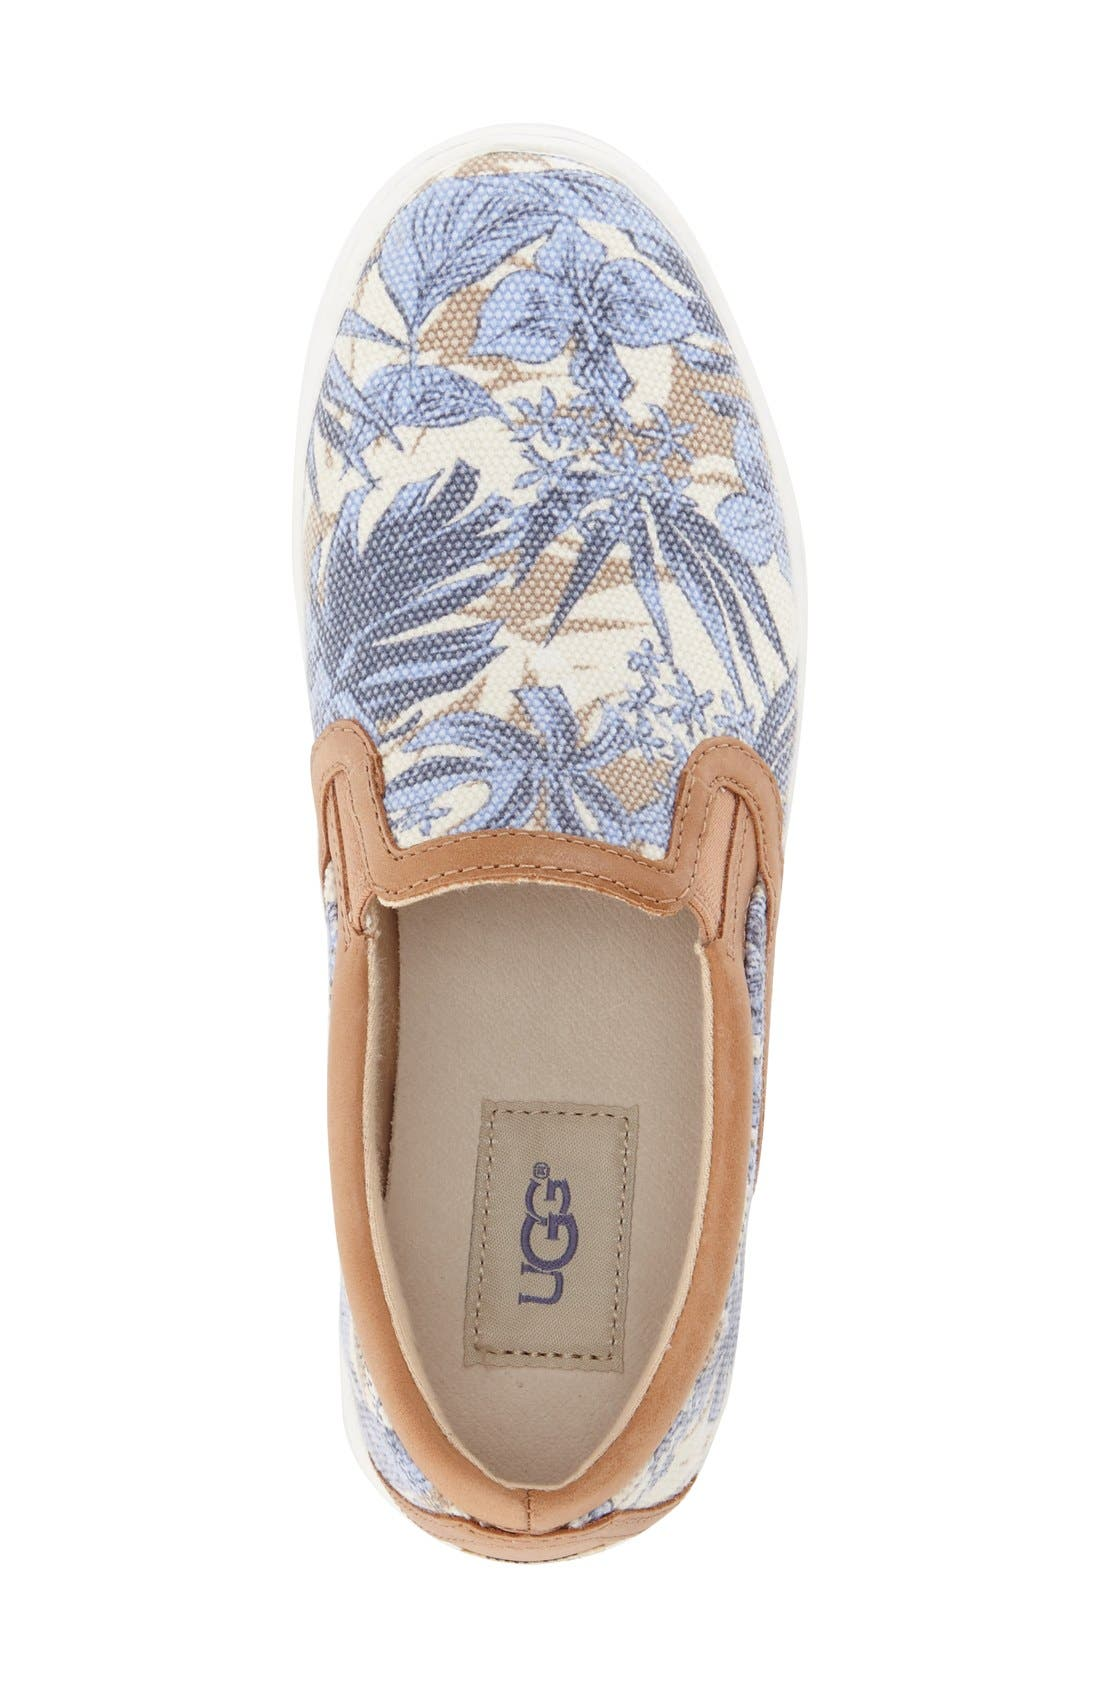 Alternate Image 3  - UGG® 'Fierce - Island Floral' Slip-On Sneaker (Women)